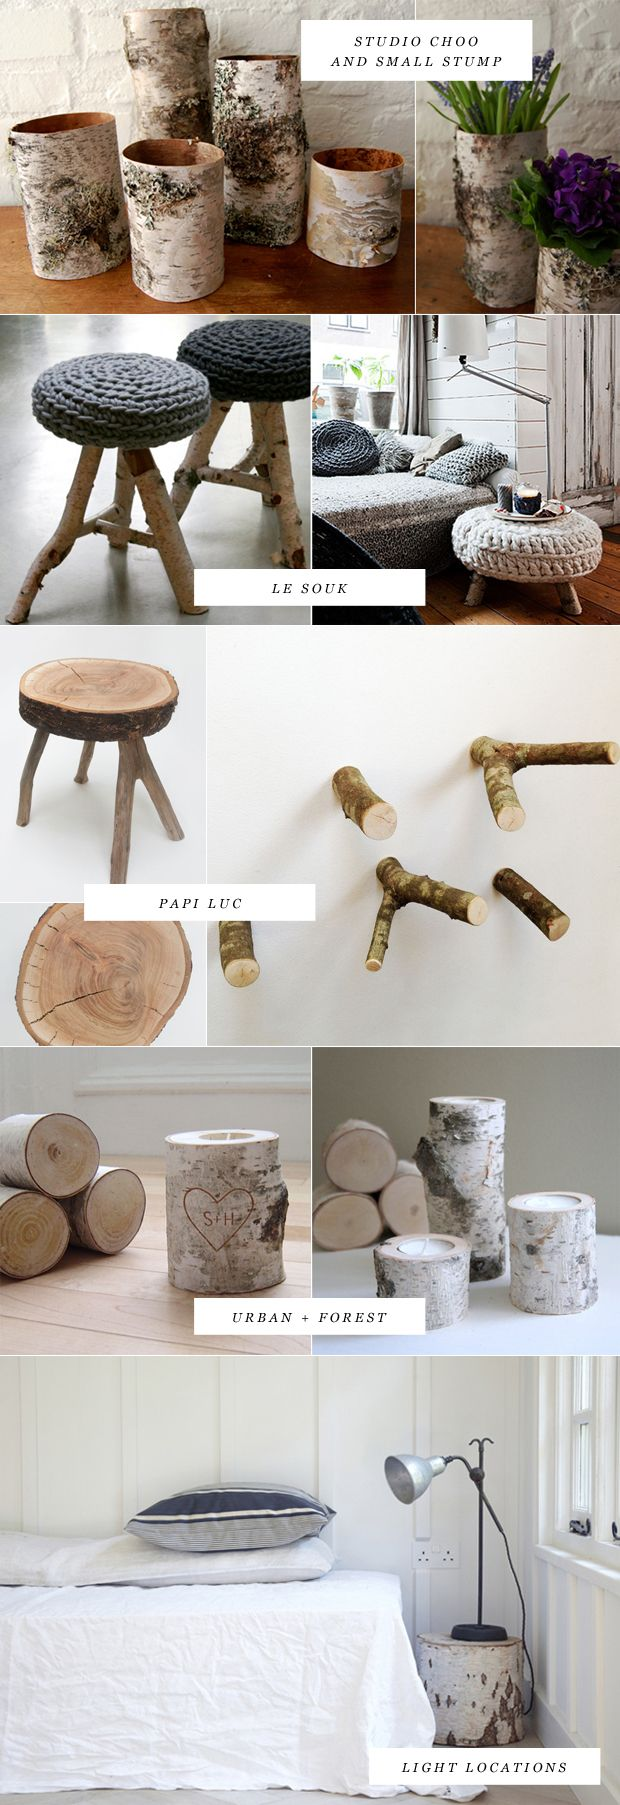 Bring in the Birch (furniture) via Dearest Nature